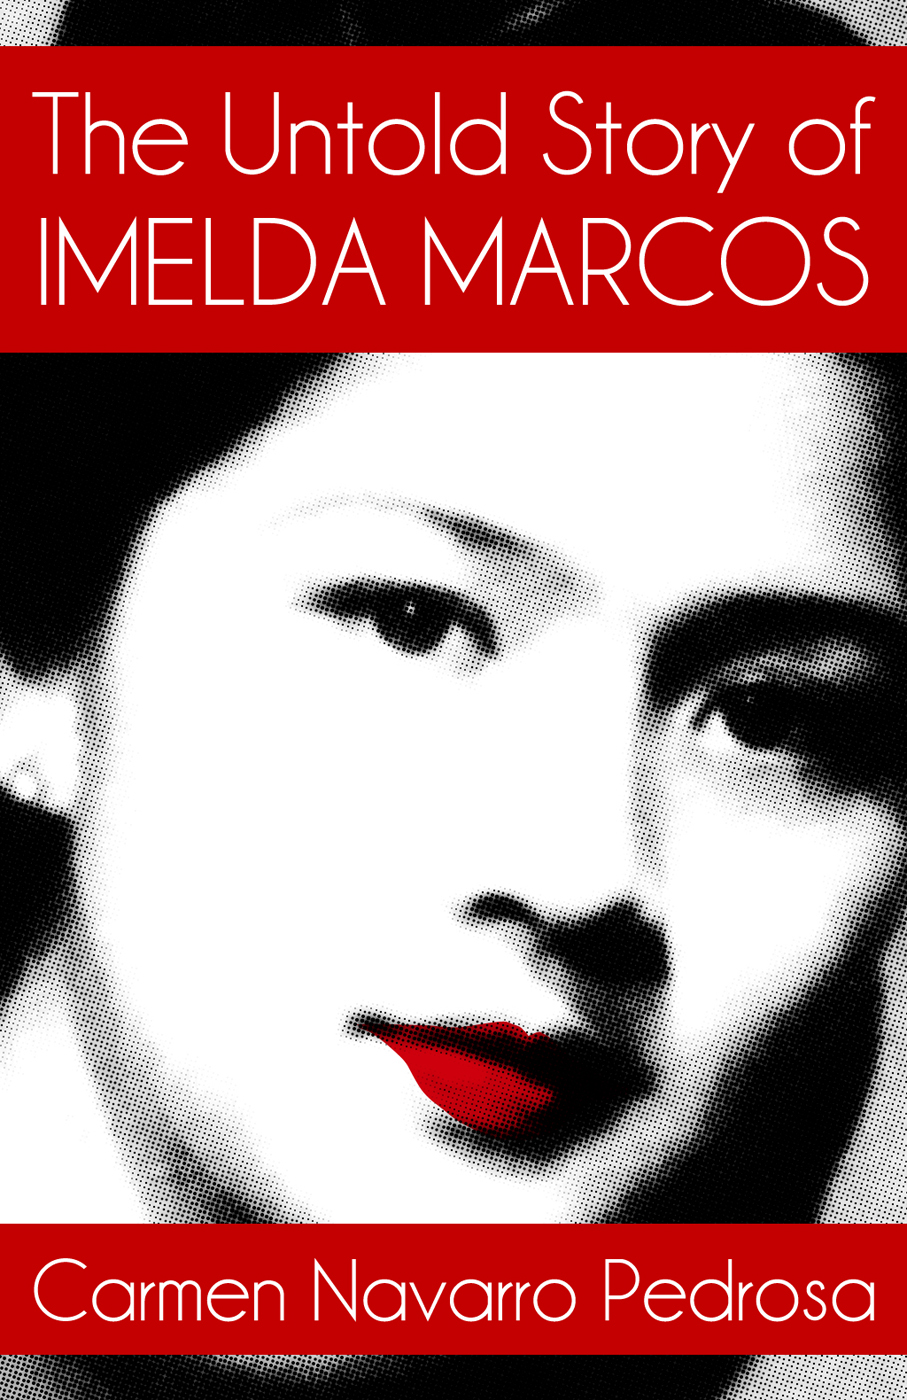 The Untold Story of Imelda Marcos